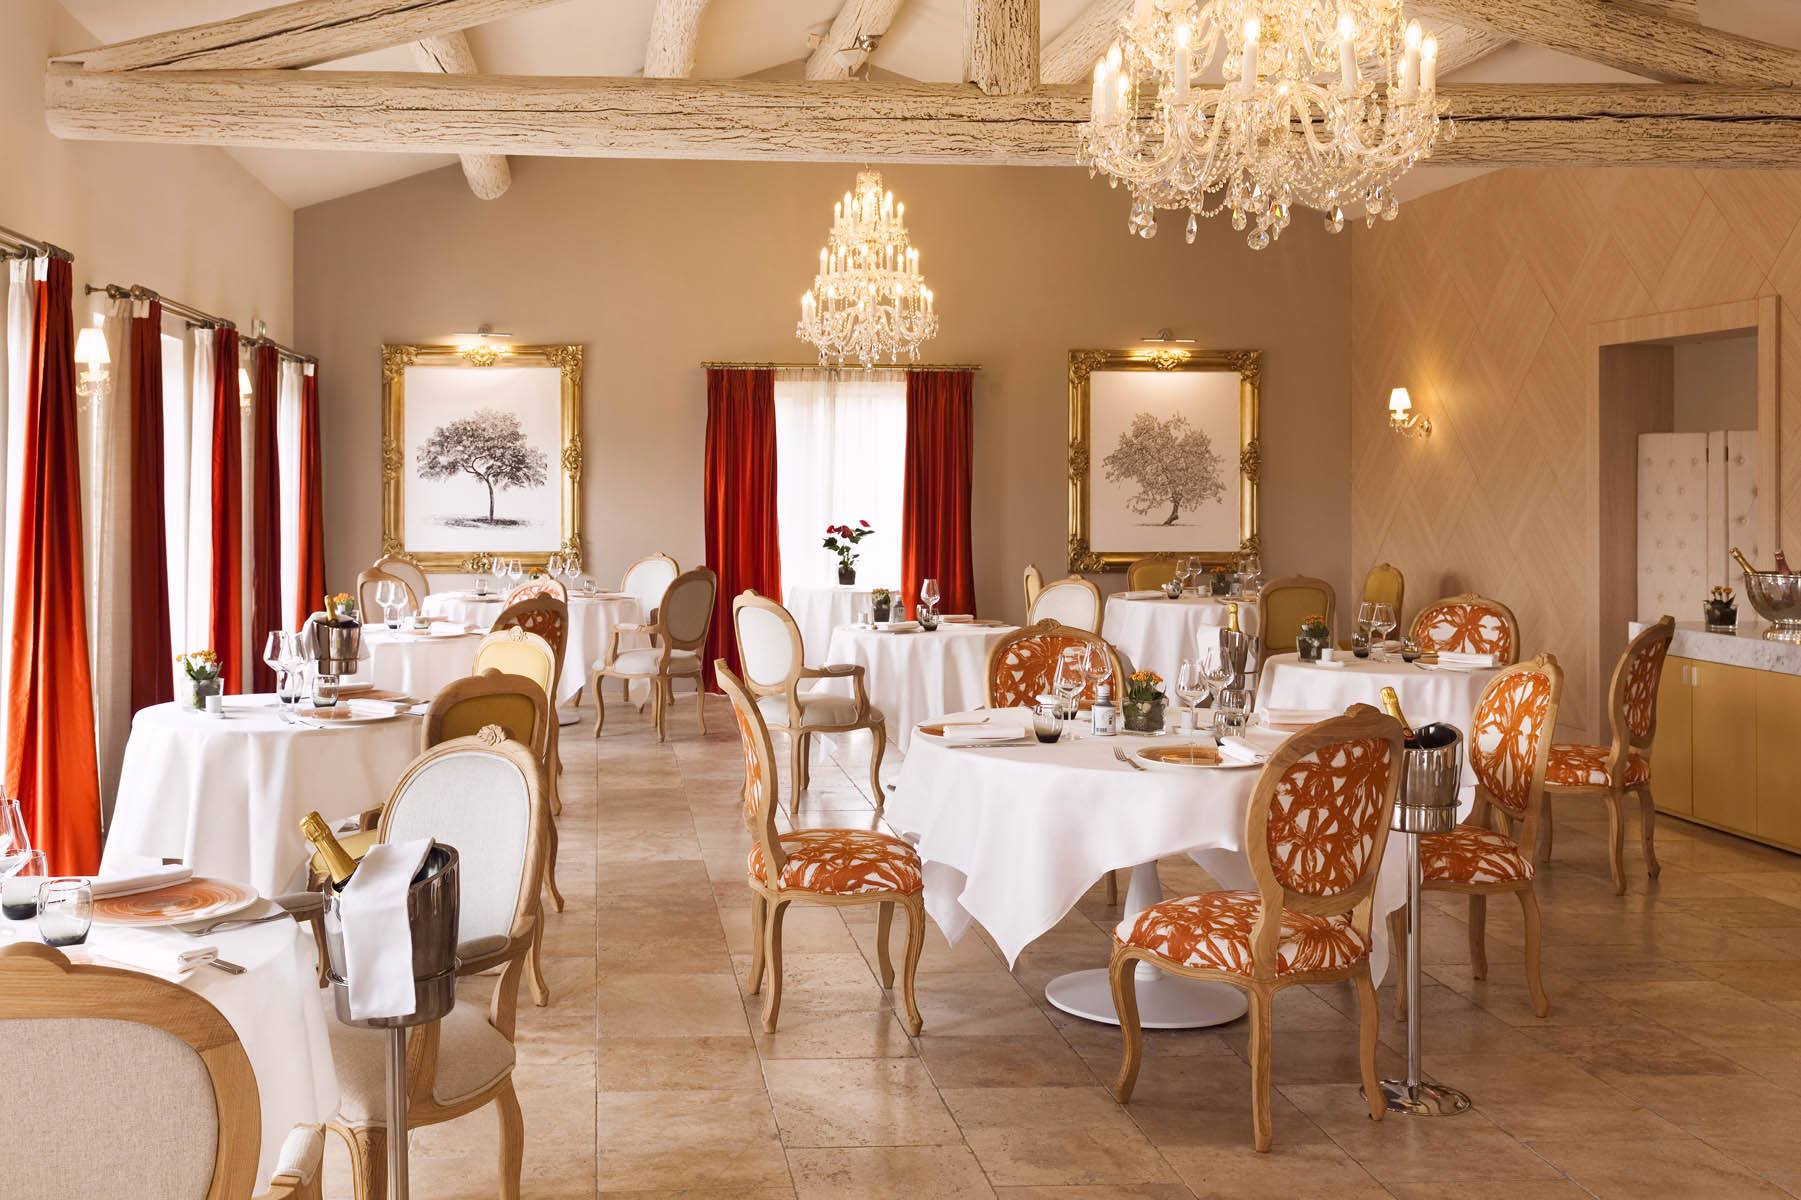 Restaurant of the hotel Le Mas des Herbes Blanches